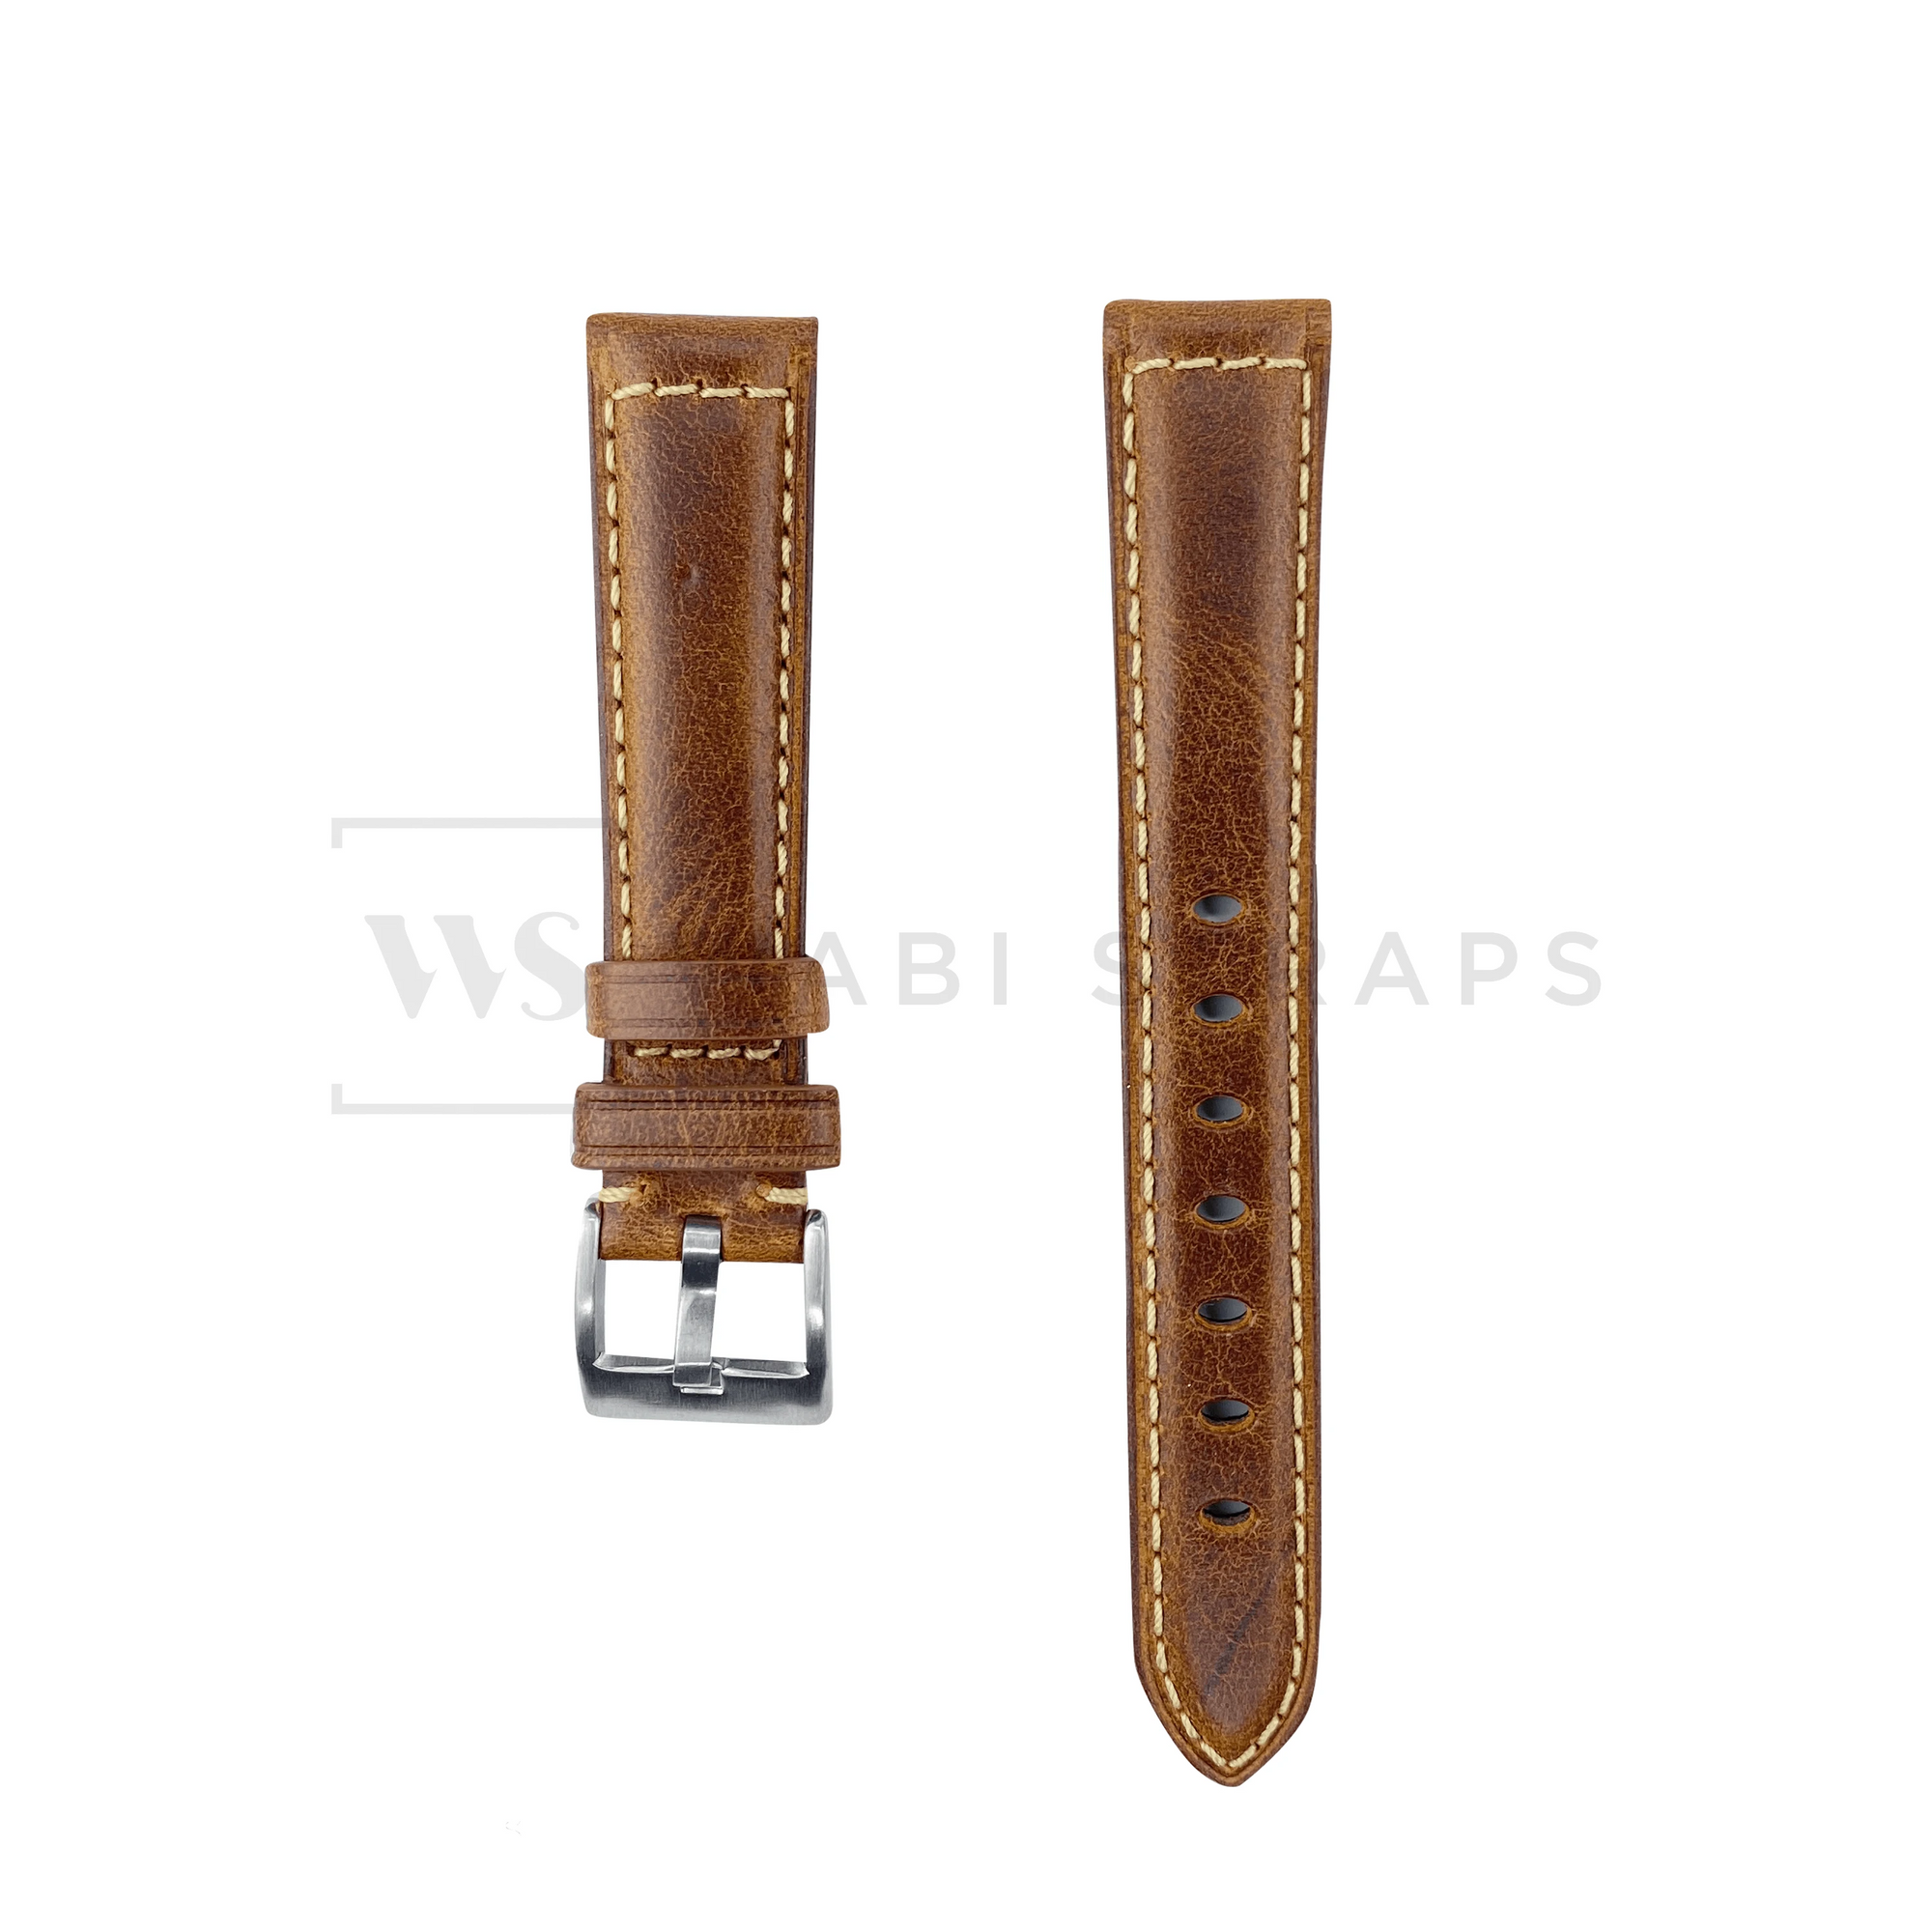 Chestnut Tan Oxford Padded Leather Strap